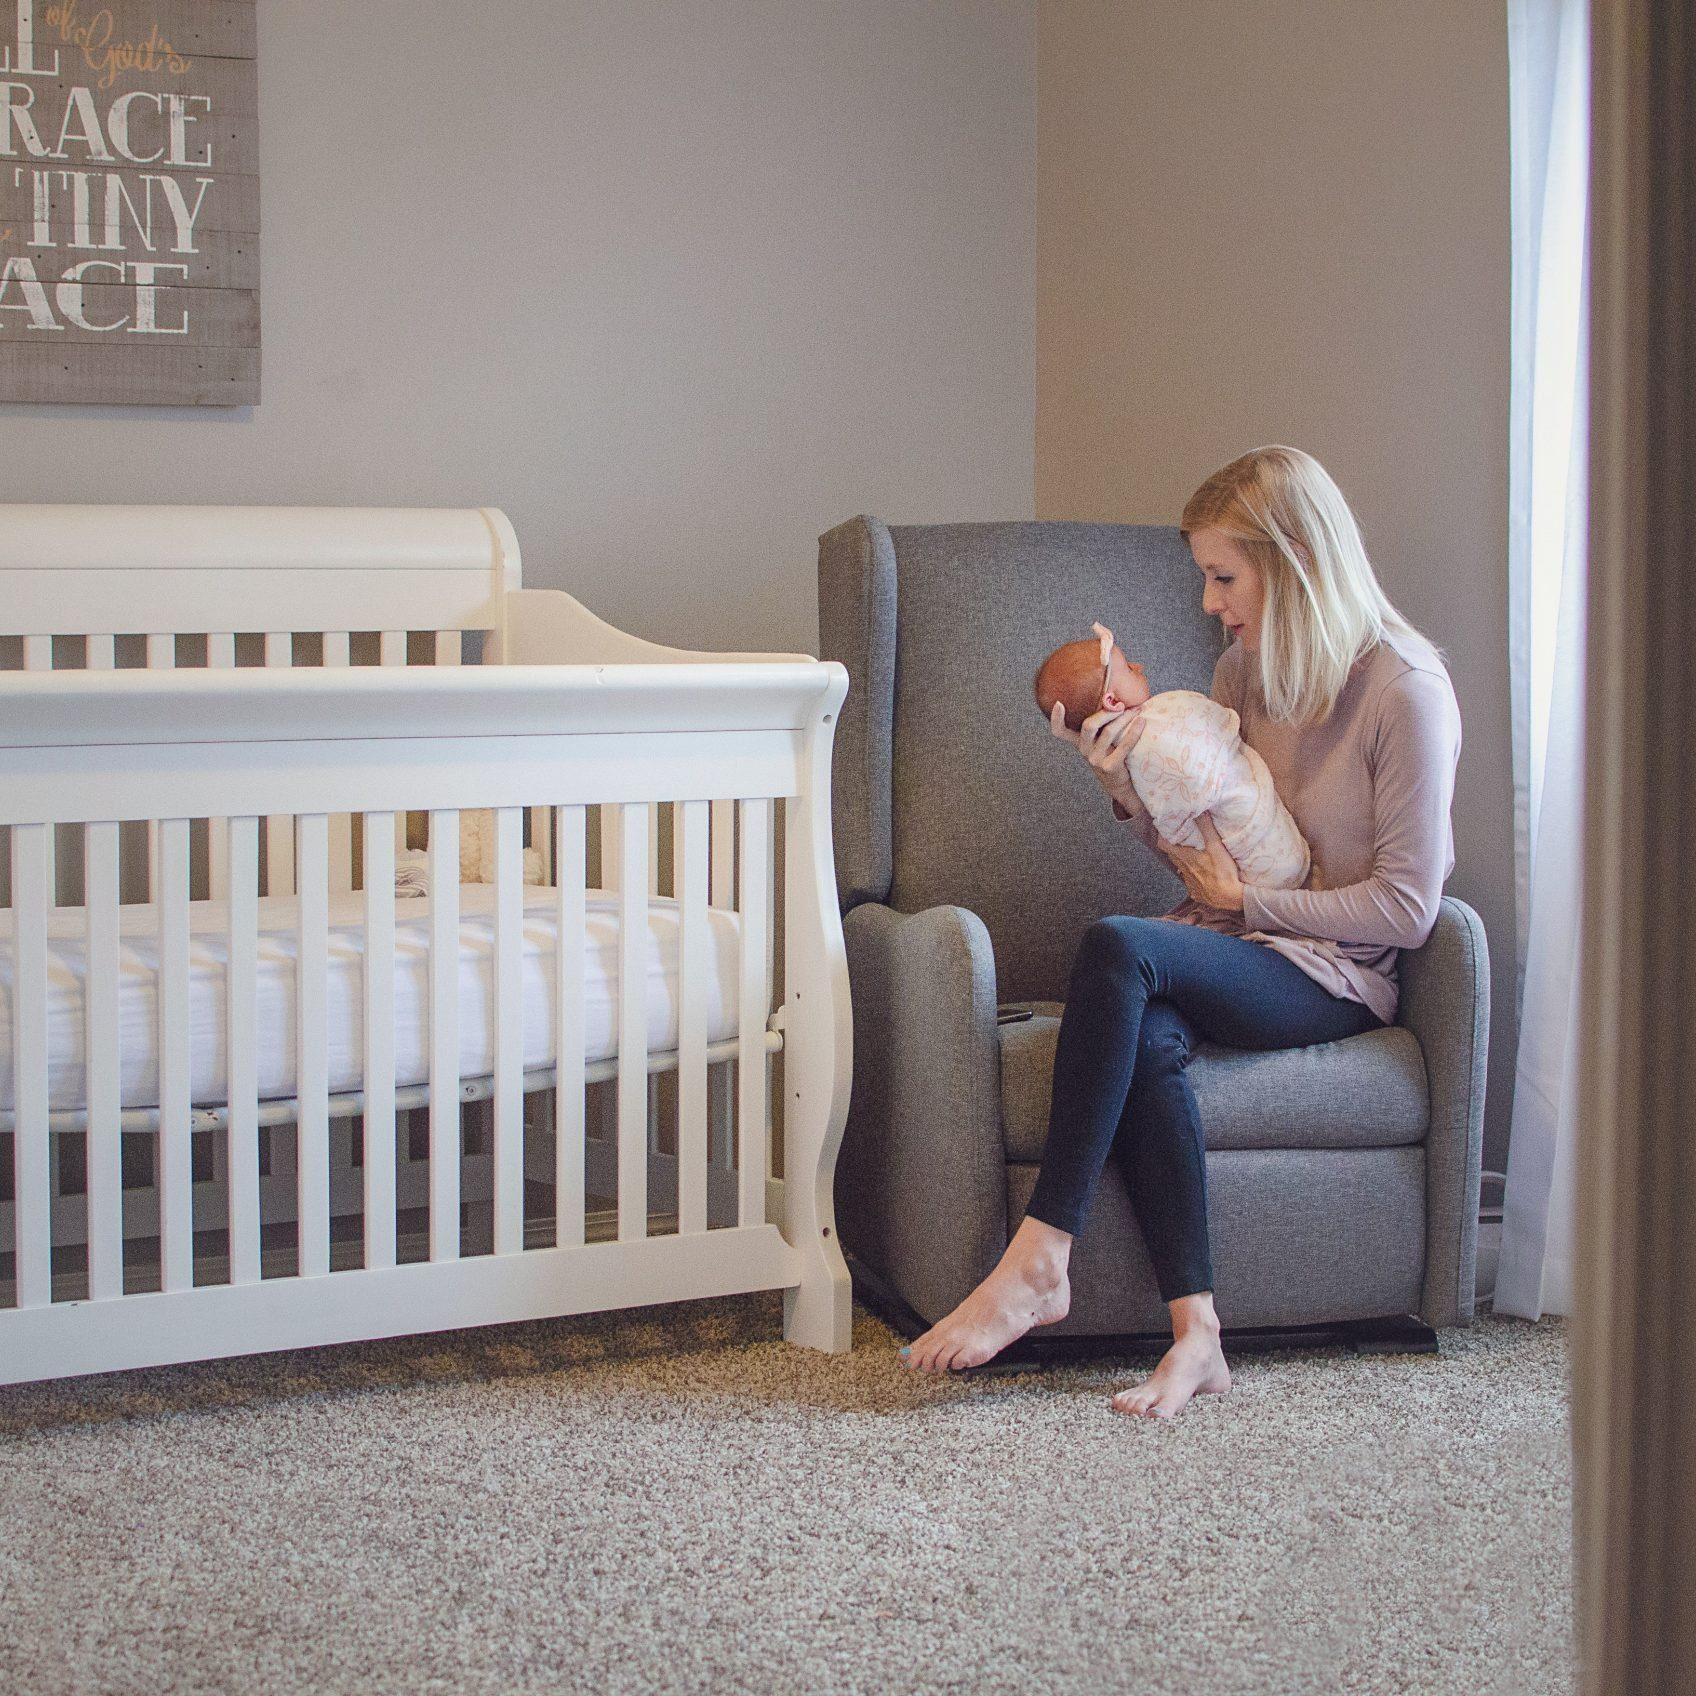 baby boom, nursery, remodel 2021The baby boom verdict is still out, but many homeowners are looking at creating viable space for aging in place and multi-generational housing! 3Rs Construction is here to help.